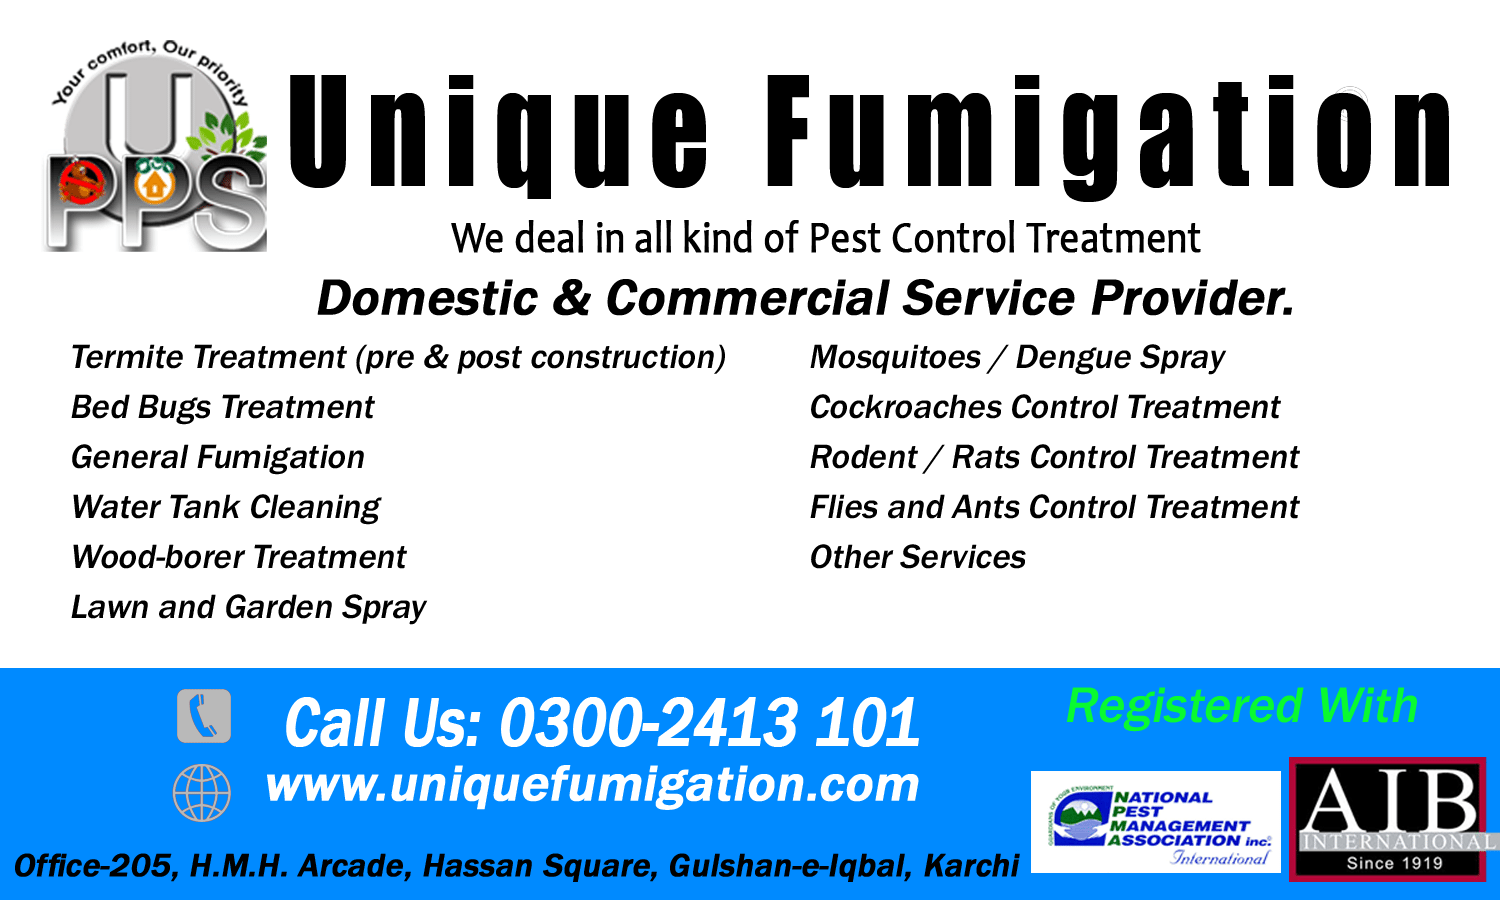 Fumigation / Pest Control Service All Over Karachi, Water Tank Cleaning - Unique Fumigation 6